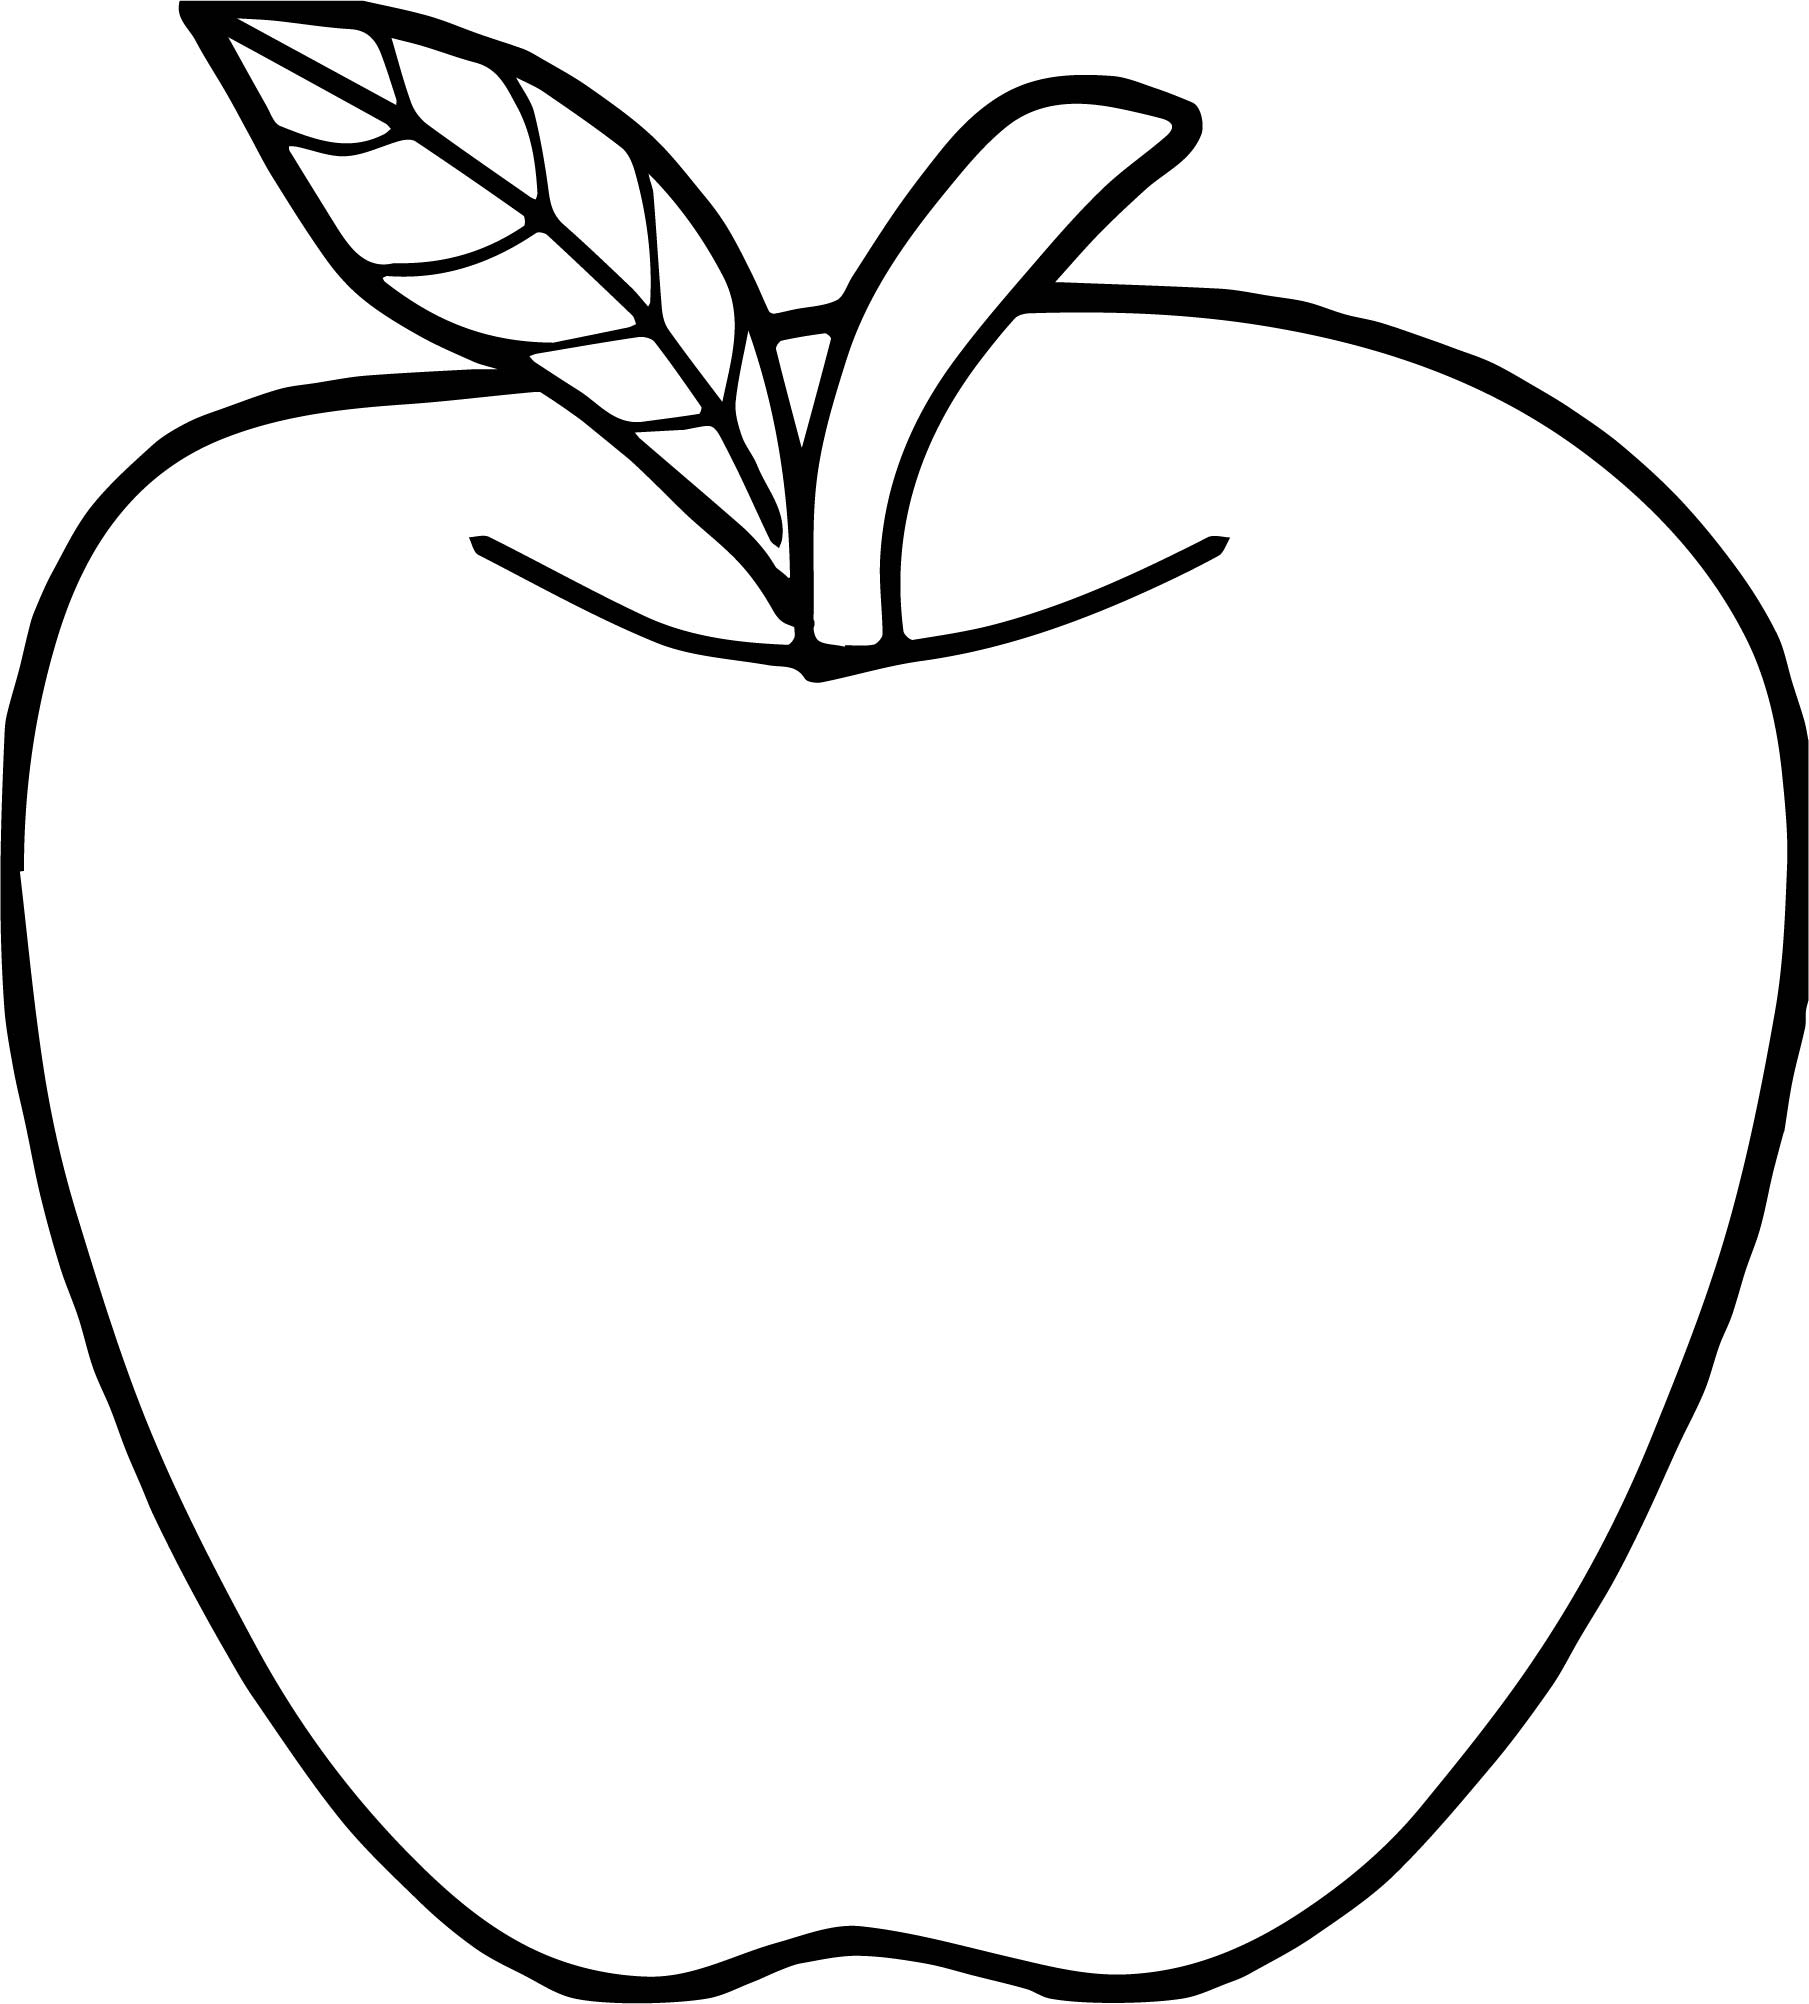 apple pictures to color apple line drawing at getdrawings free download color apple to pictures